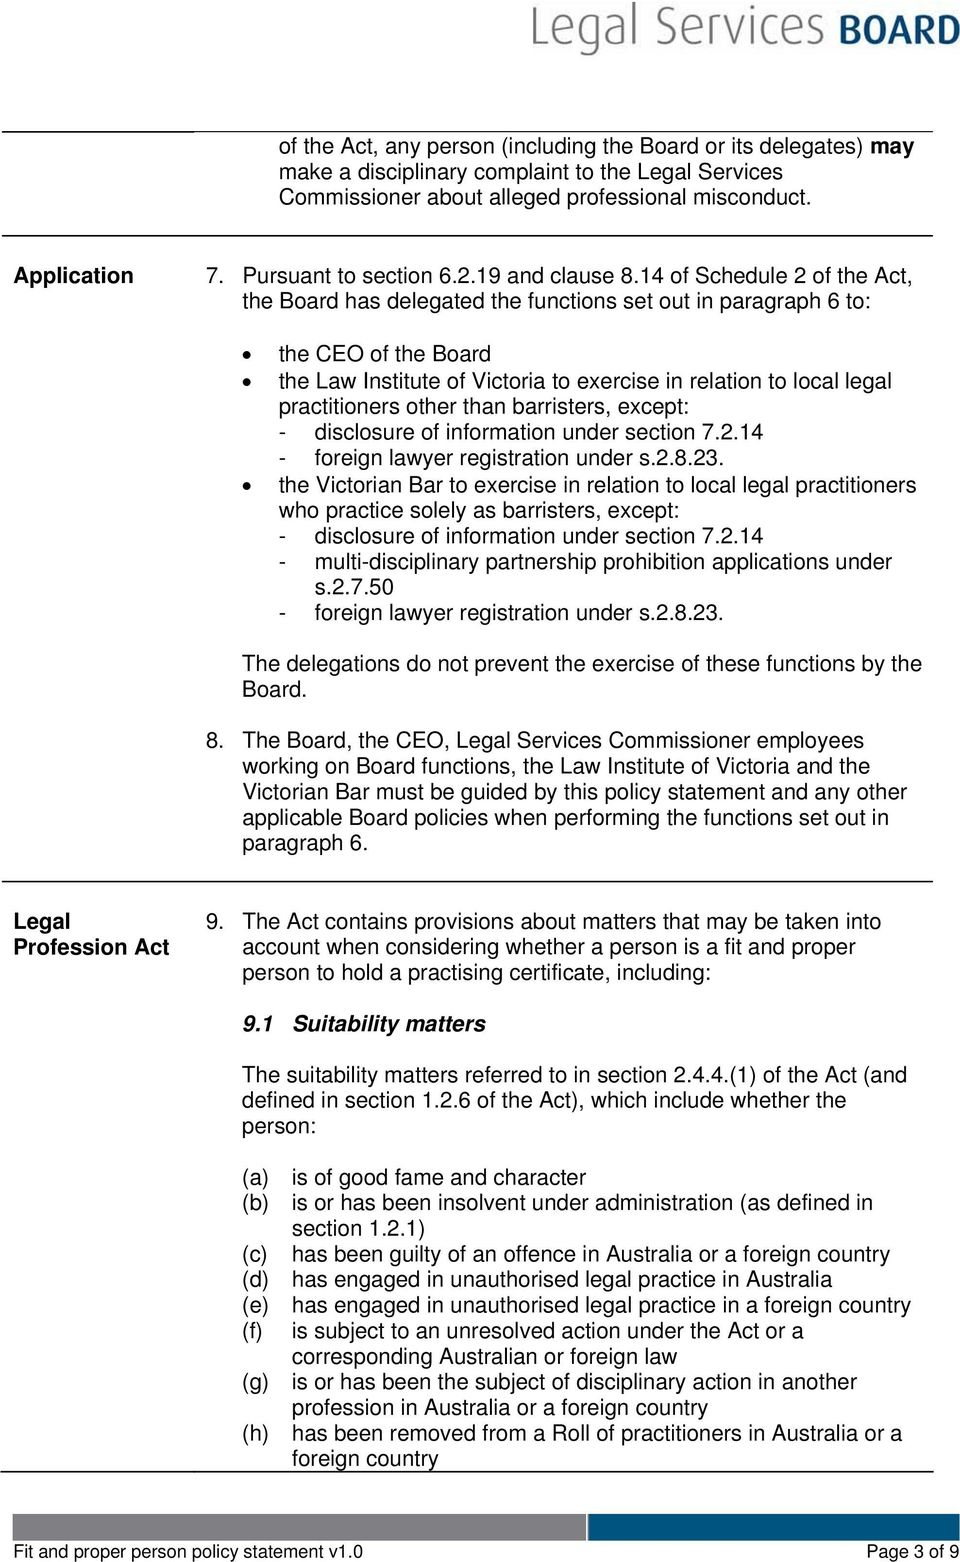 14 of Schedule 2 of the Act, the Board has delegated the functions set out in paragraph 6 to: the CEO of the Board the Law Institute of Victoria to exercise in relation to local legal practitioners